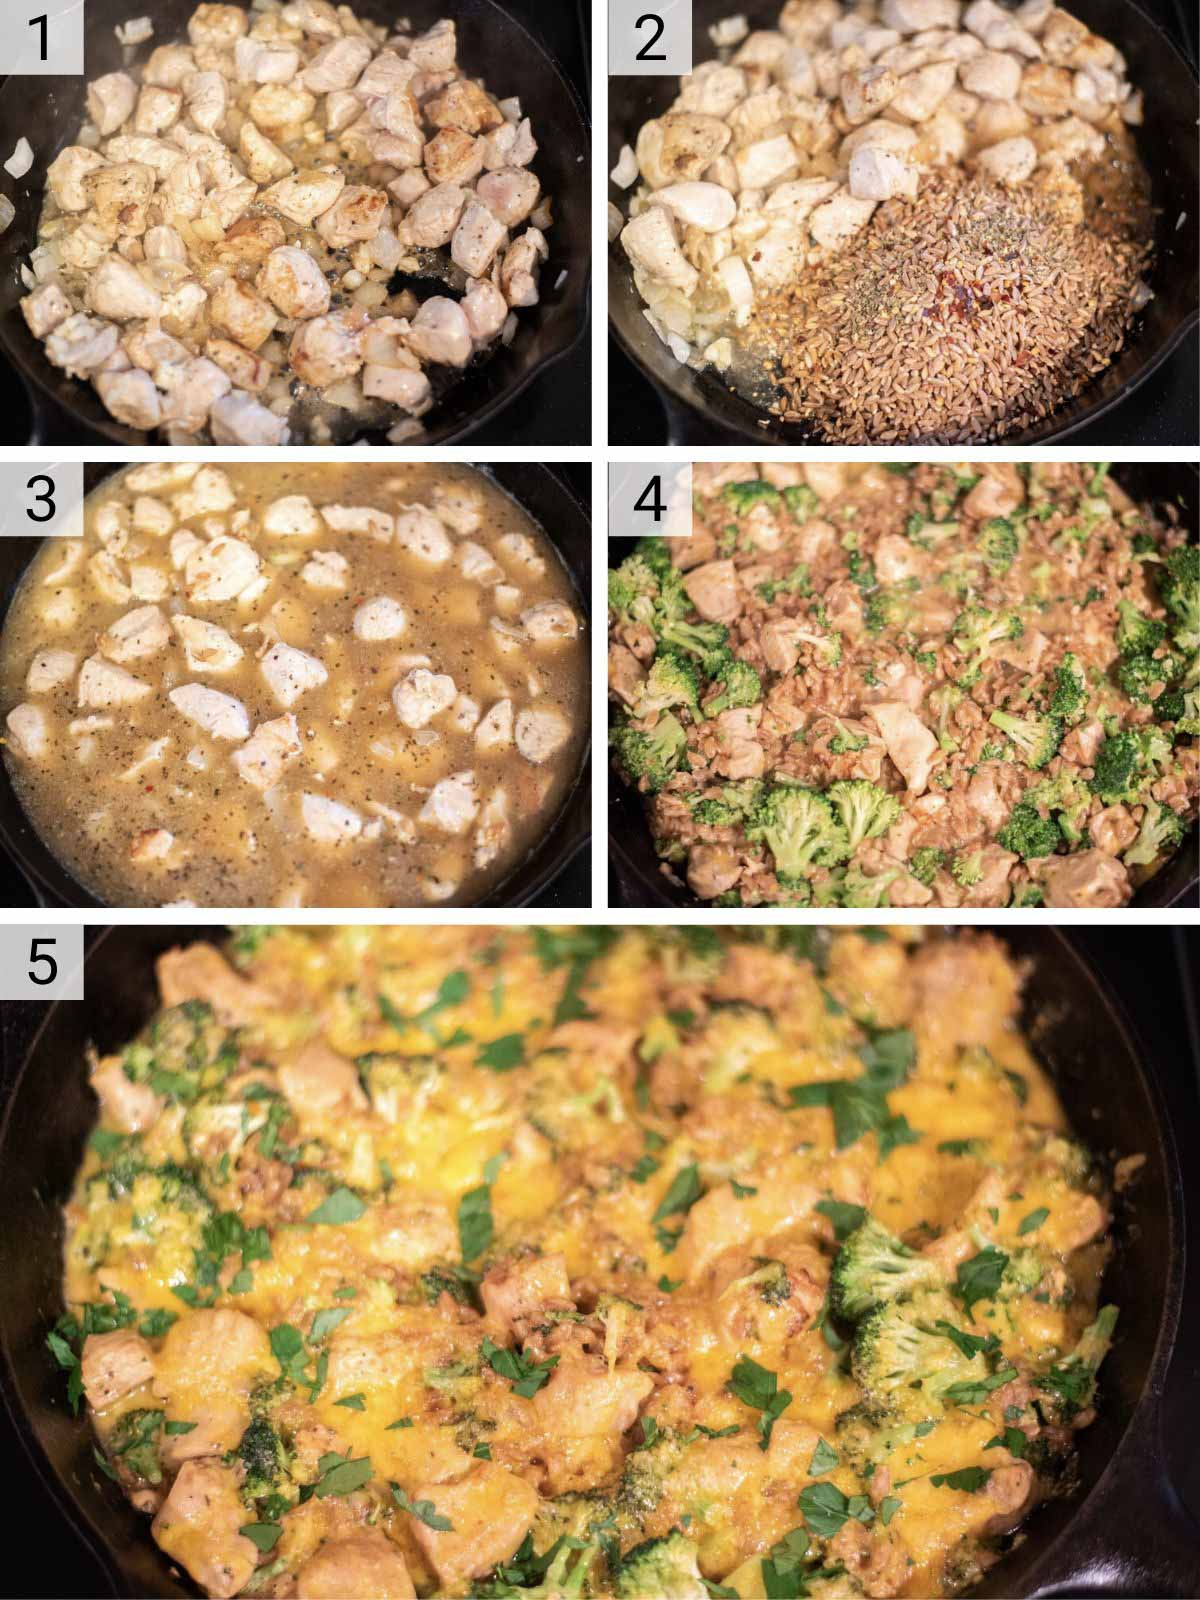 process shots of how to make chicken broccoli bake